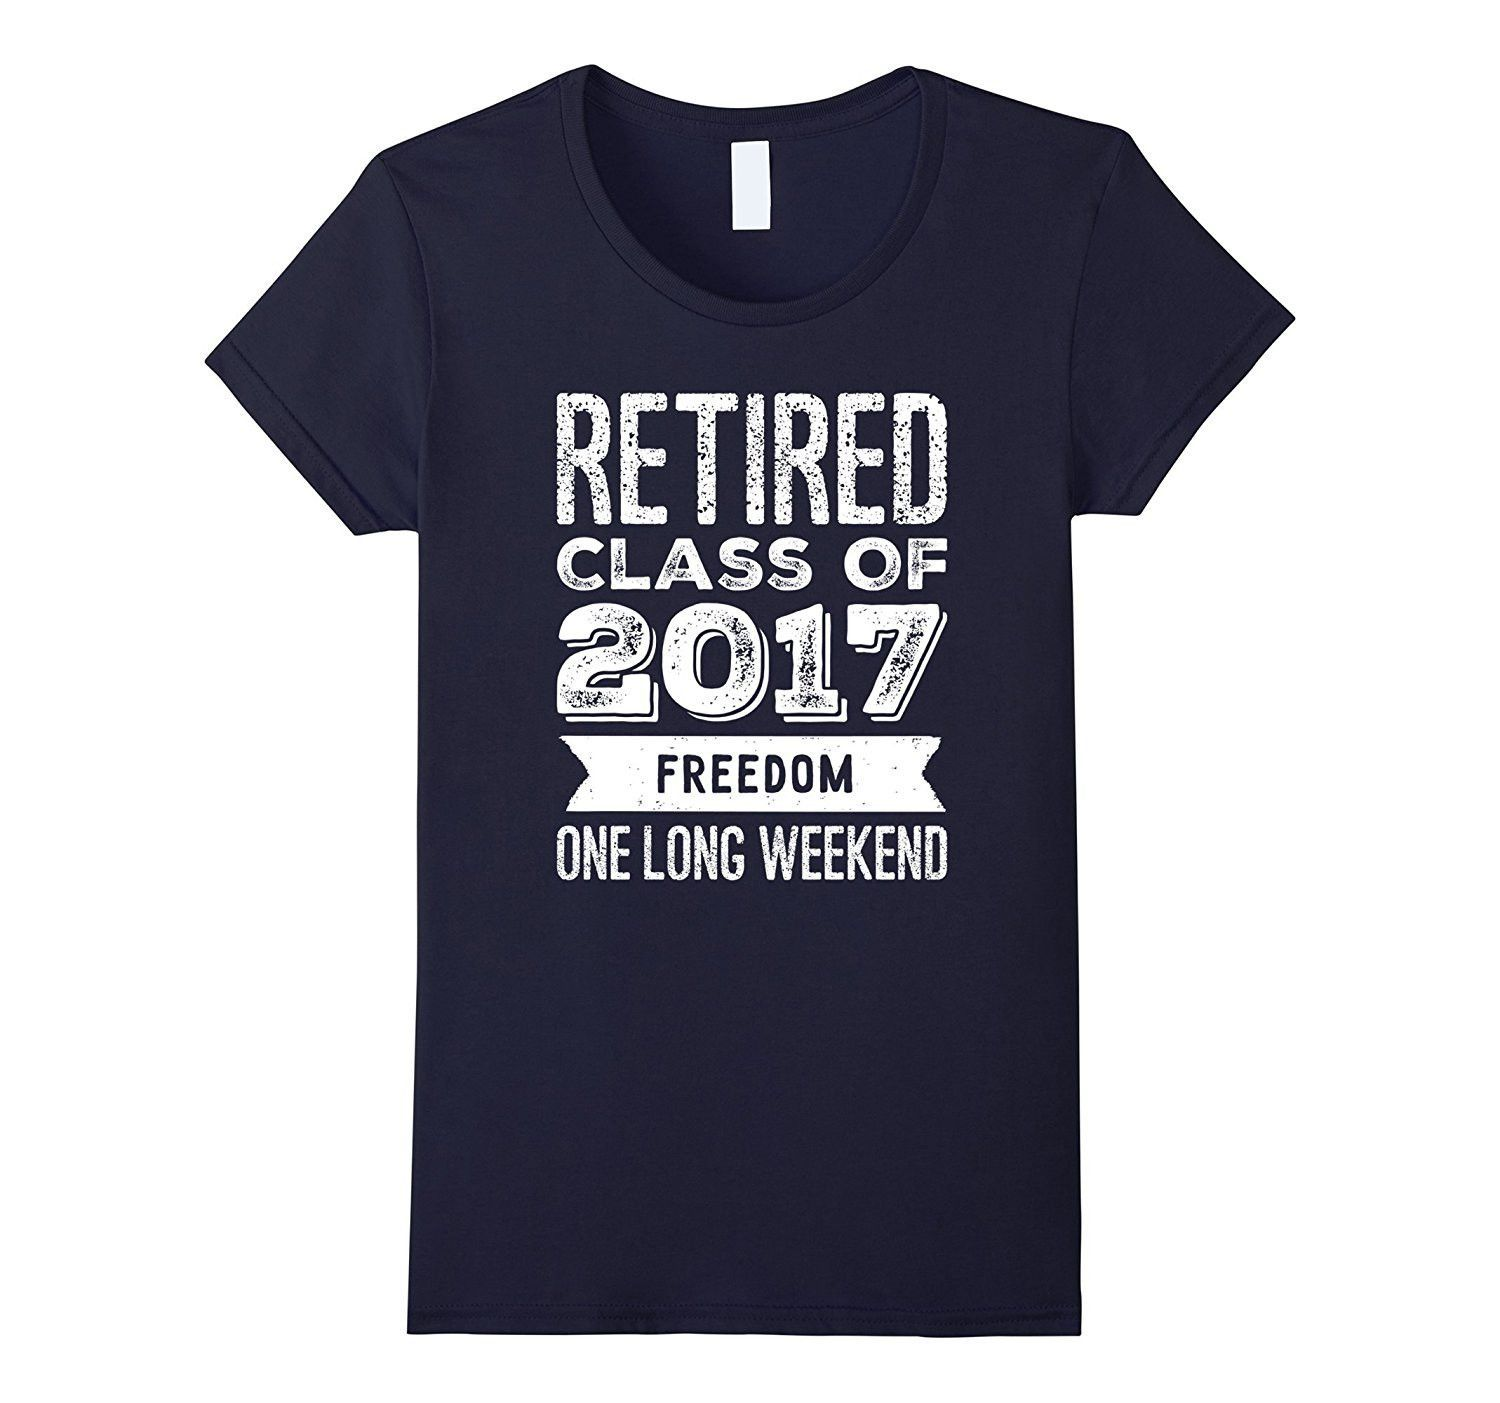 Retired Class of 2017 freedom one long weekend T shirts